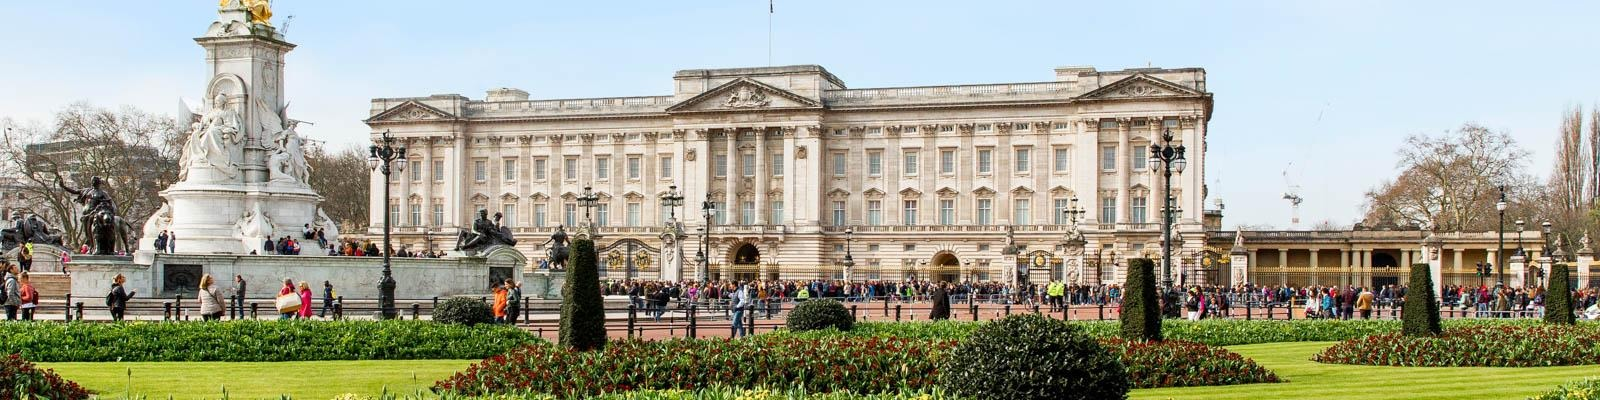 Top 5 Royal Palaces in London & How to Visit